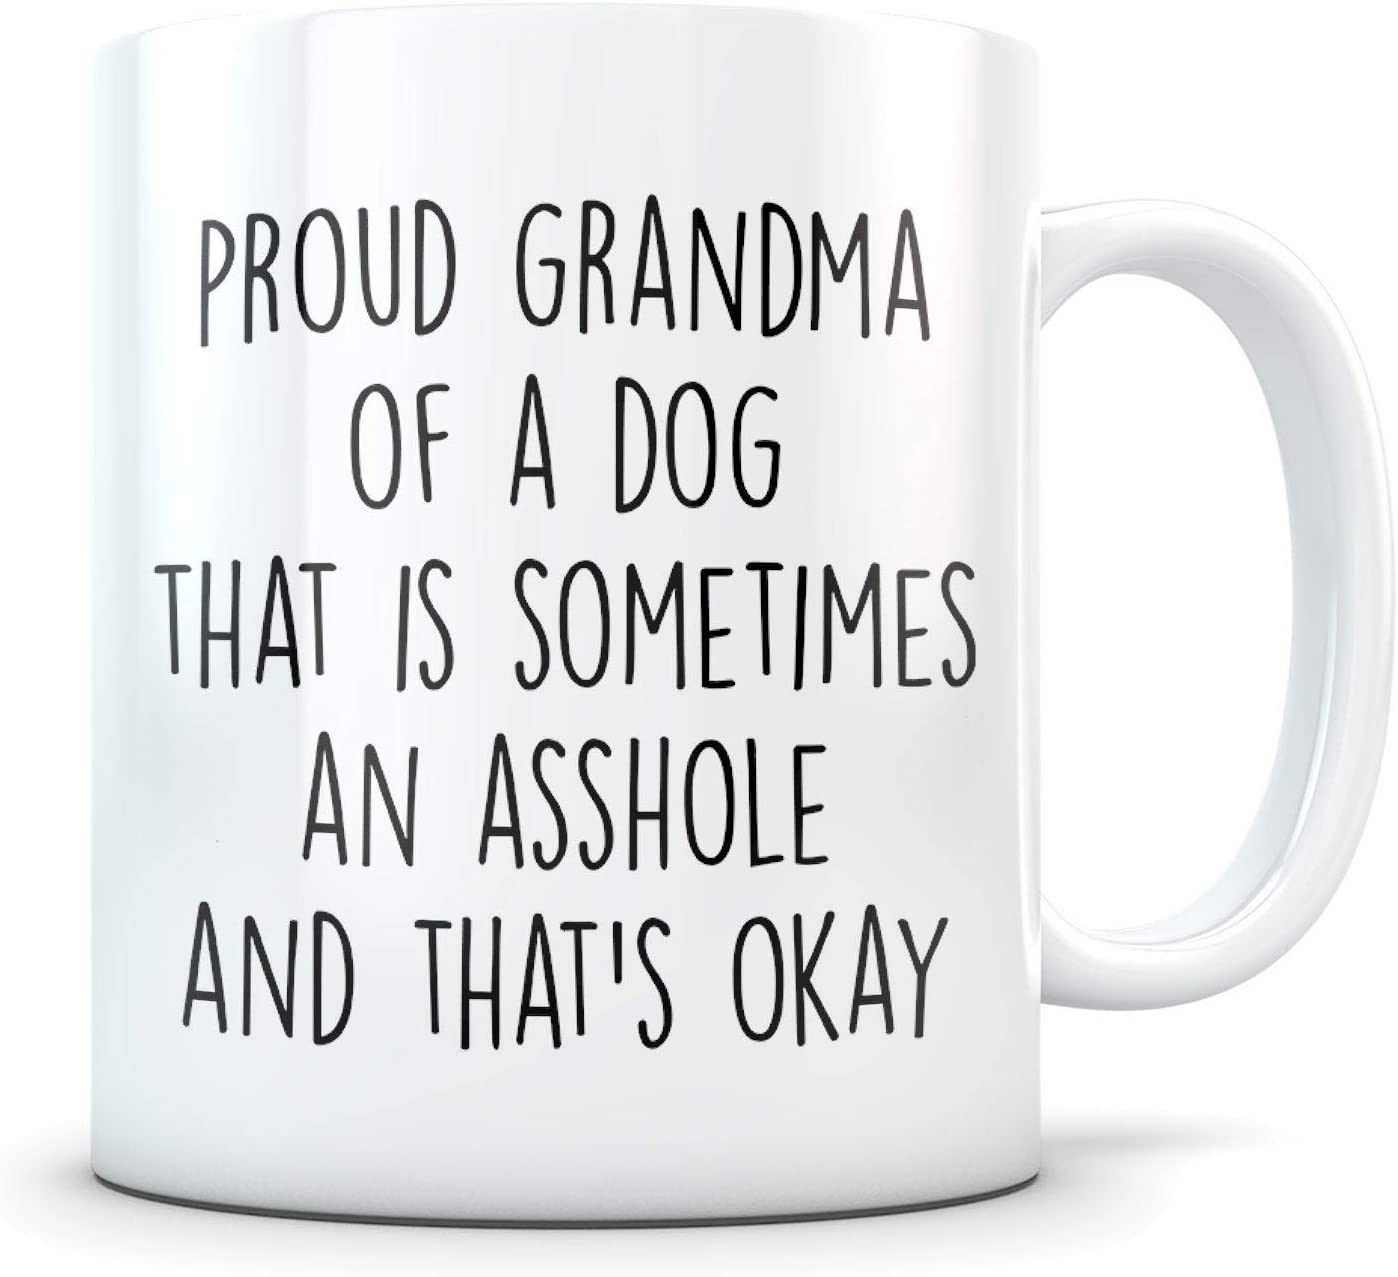 Dog grandma gift, grandma dog, dog grandma mug, dog grandmother, dog grandma coffee mug, best grandma dog, k9 grandma, dog grandmother